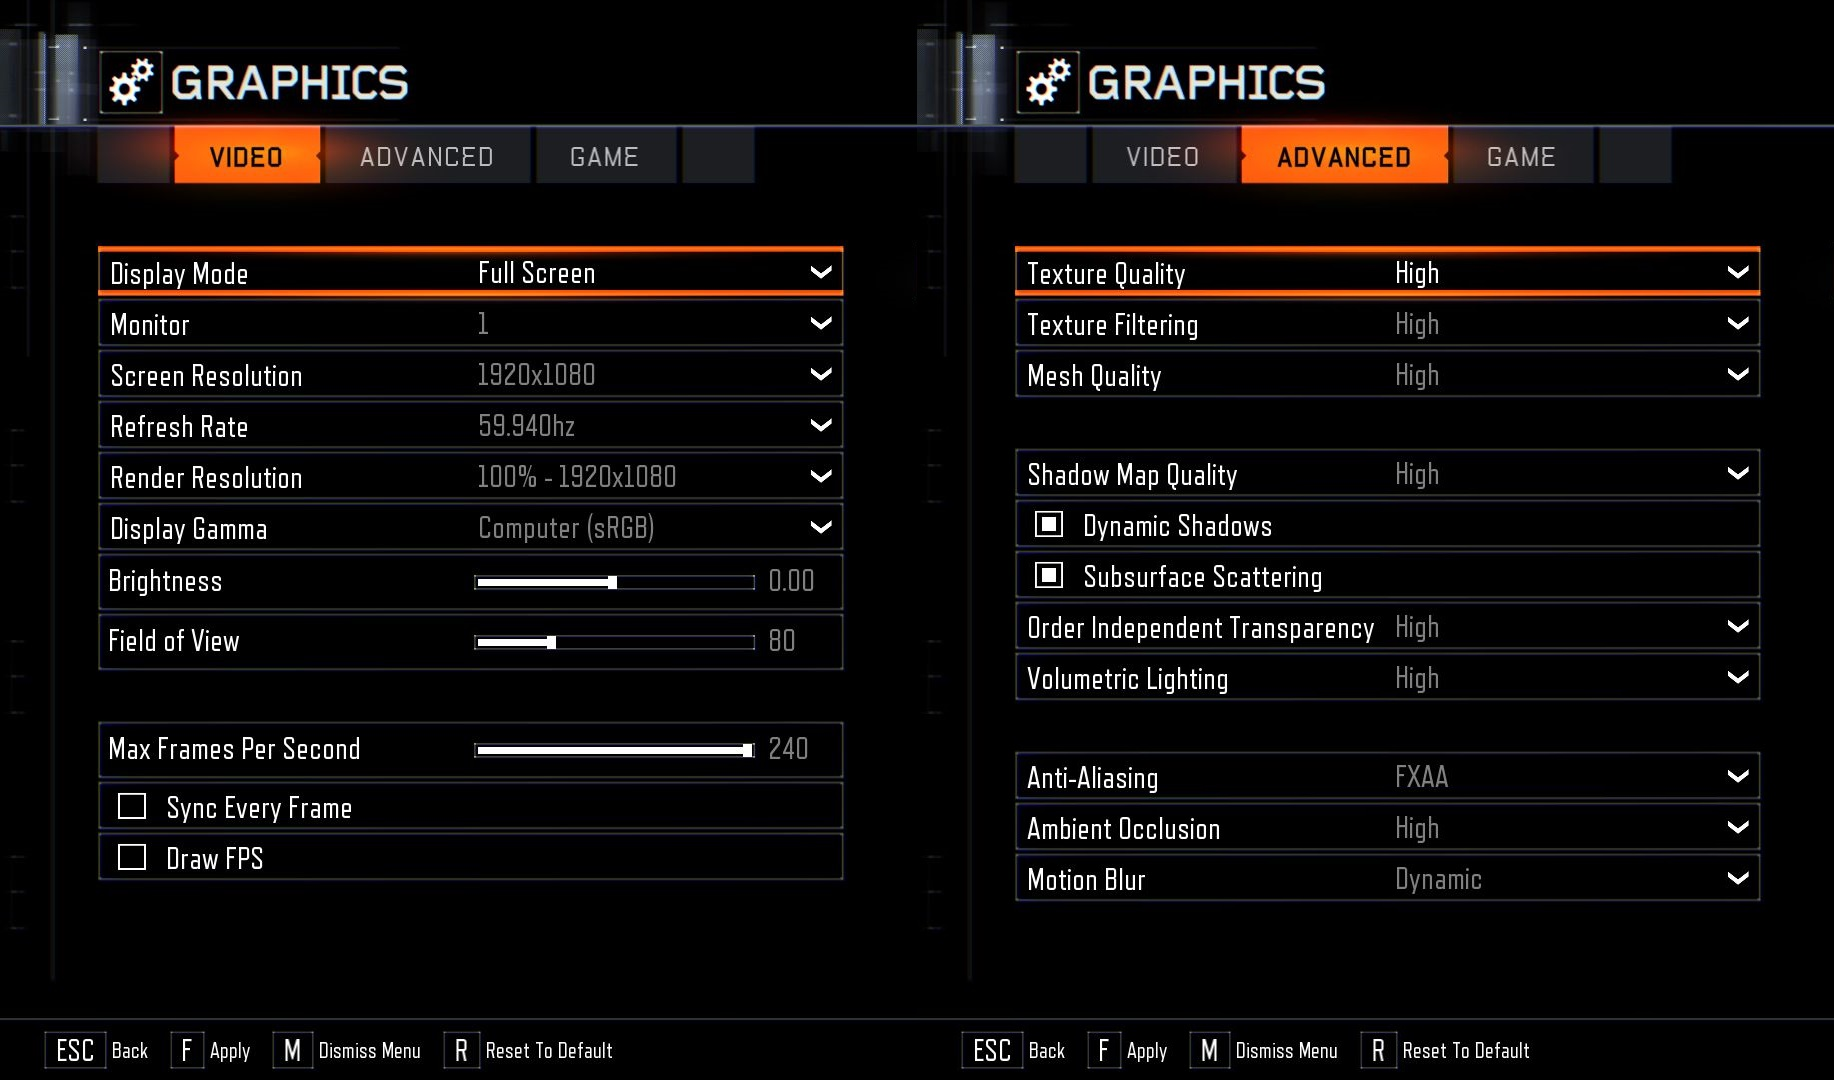 Call Of Duty Black Ops 3 Notebook Benchmarks